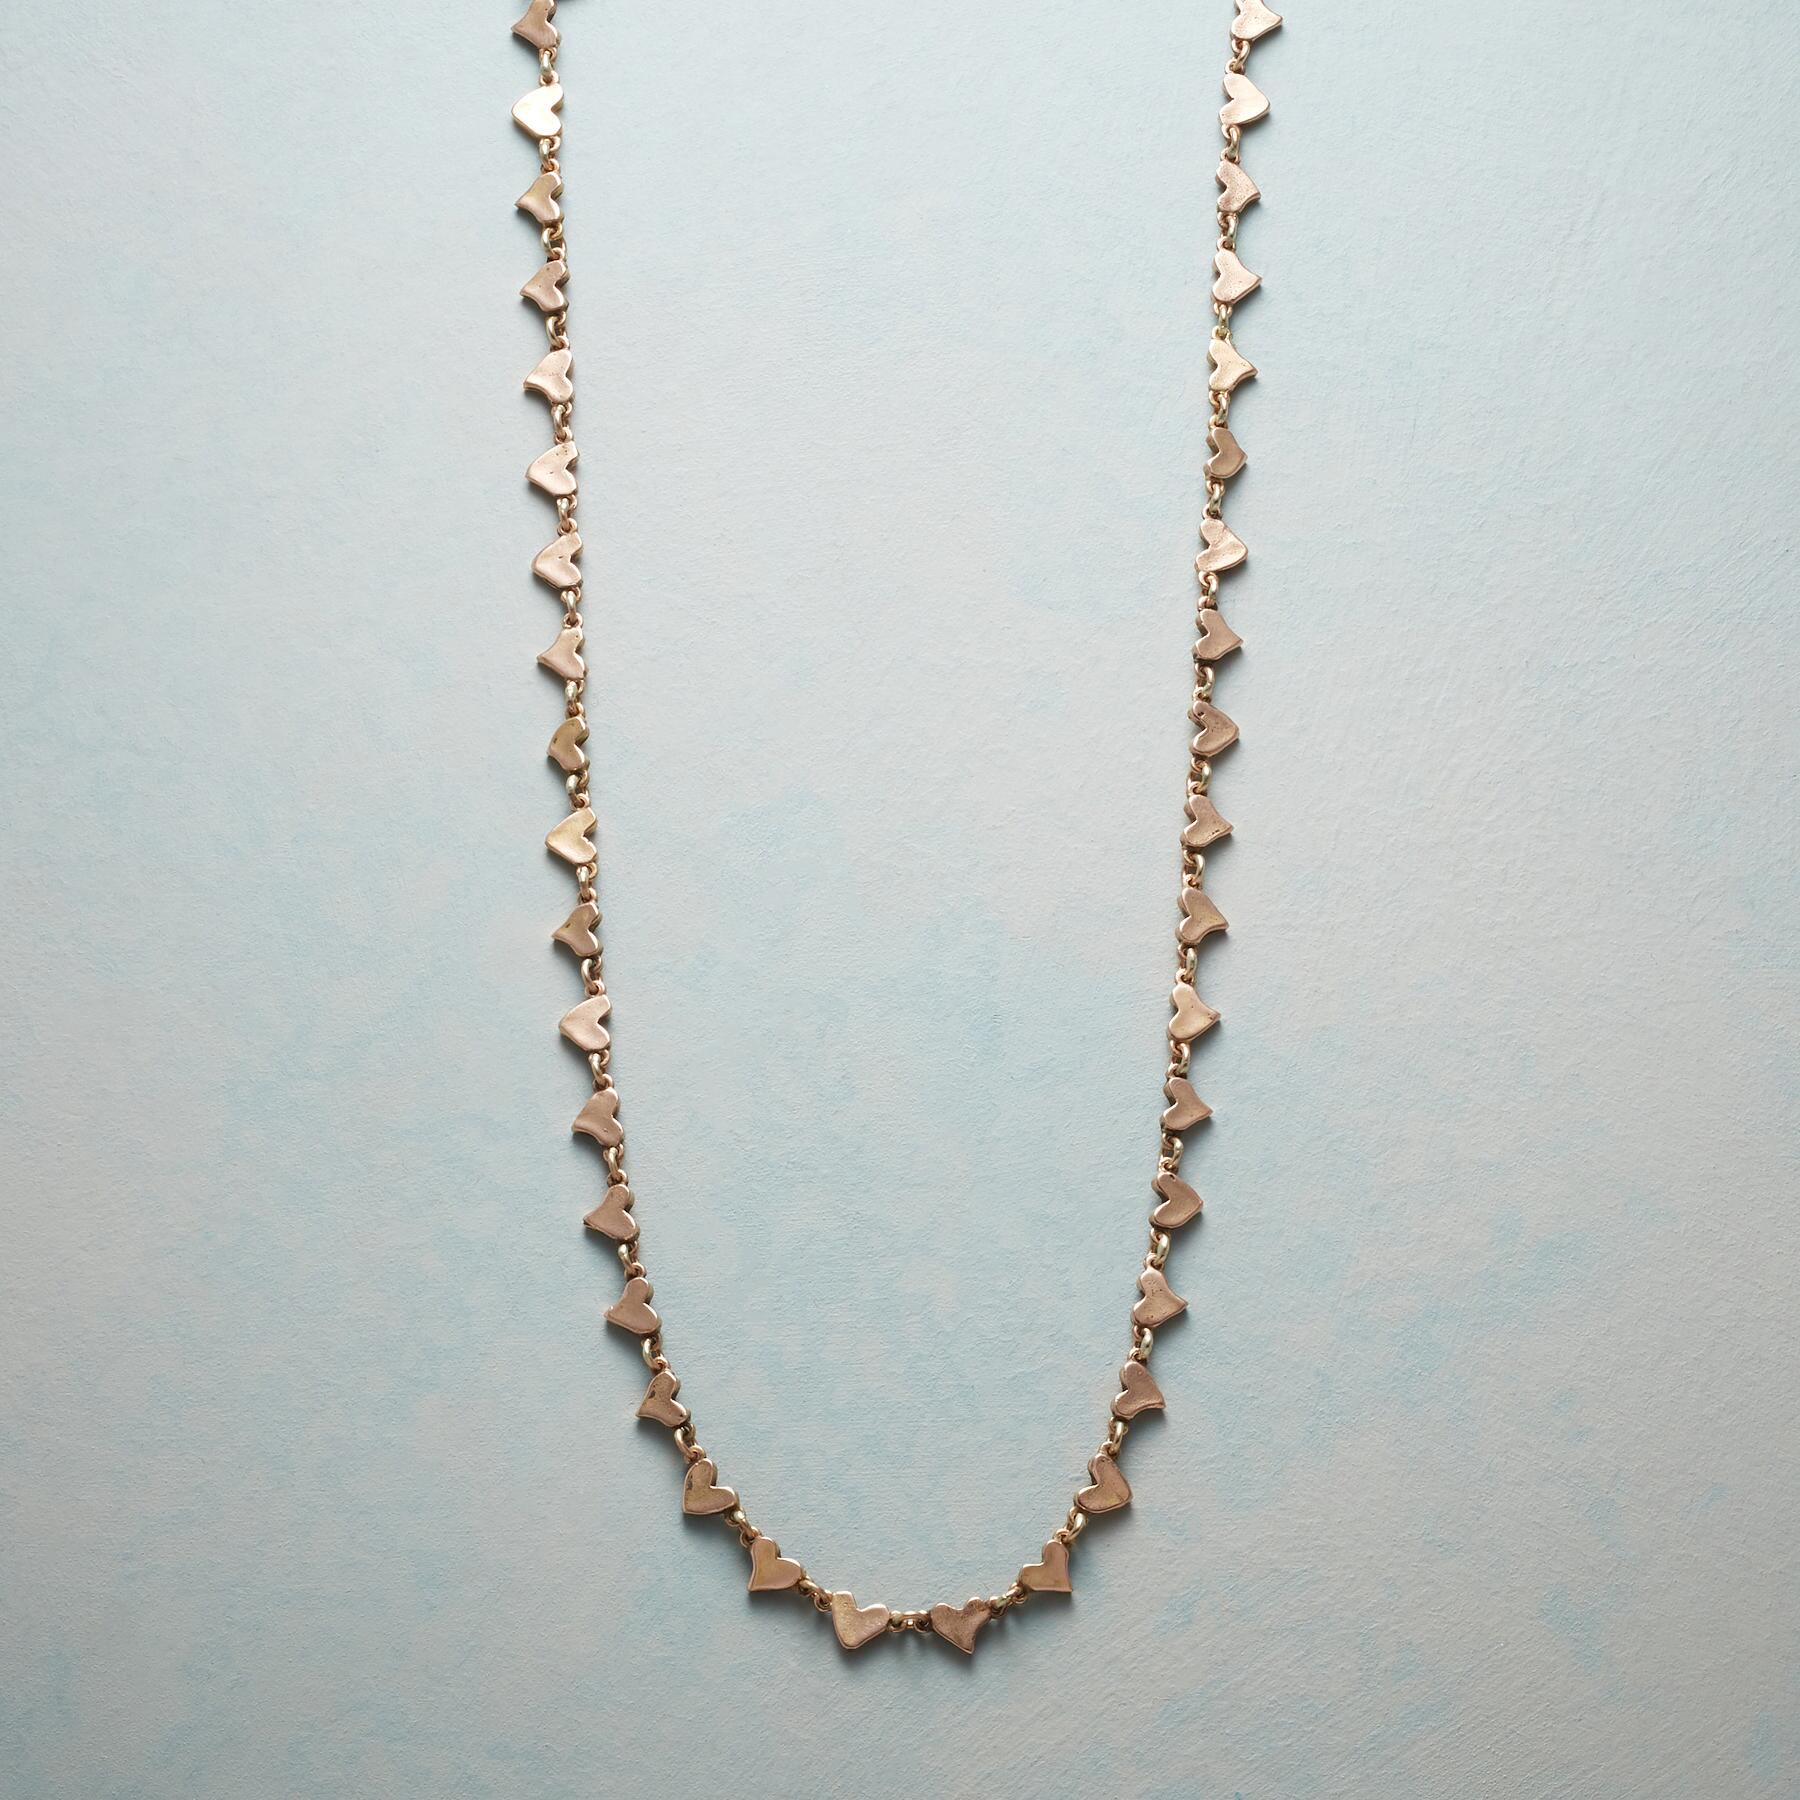 ROSE GOLD CHAIN OF HEARTS NECKLACE: View 1